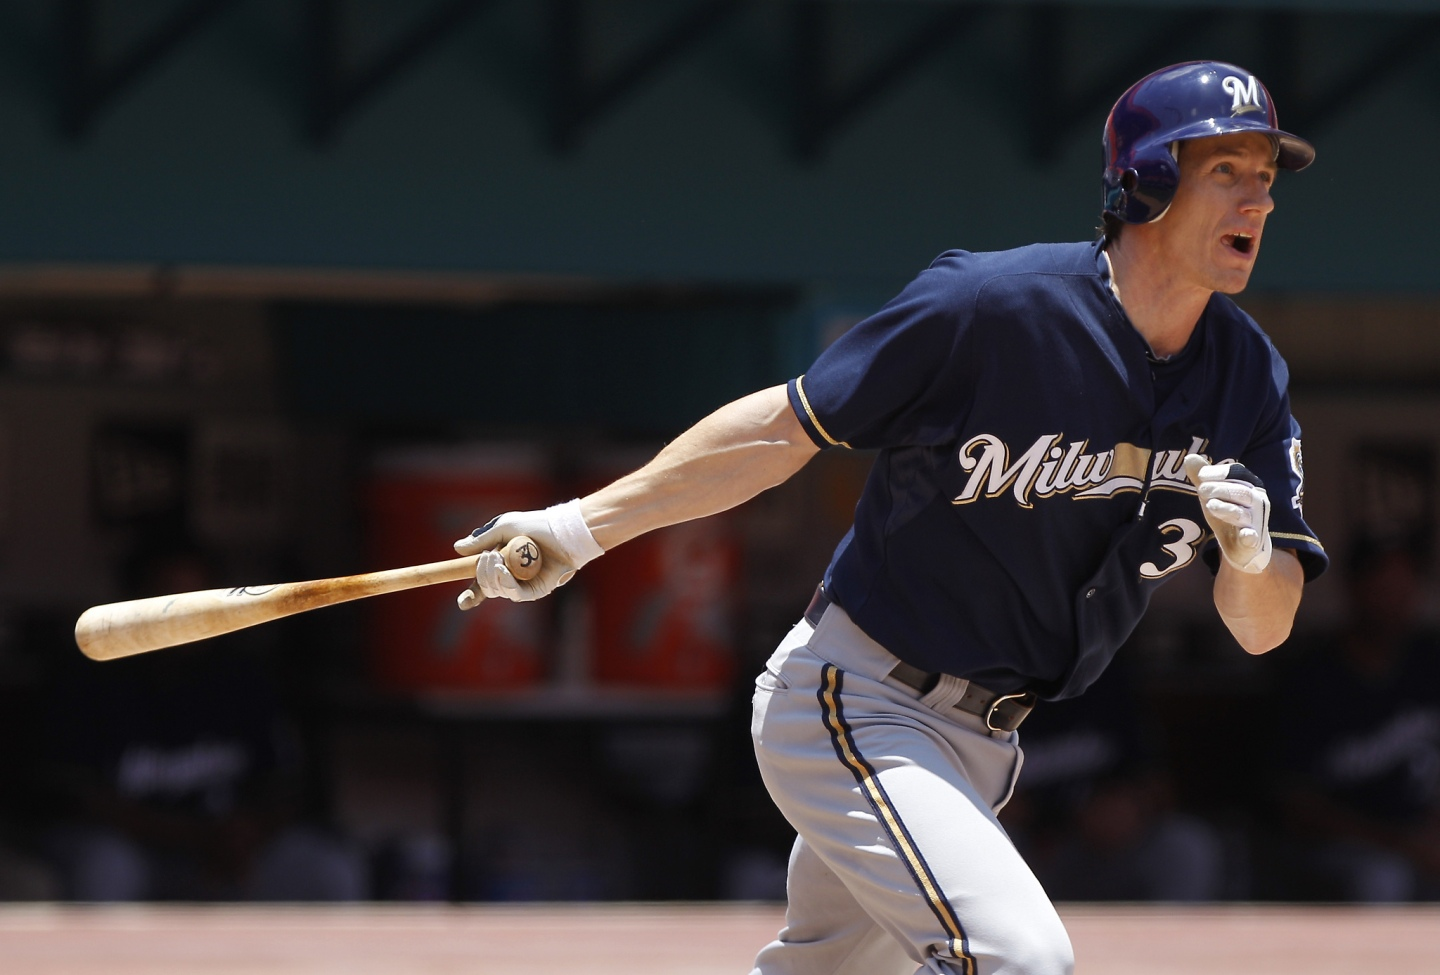 AWA Reacts: Counsell Hired as Brewers' Manager